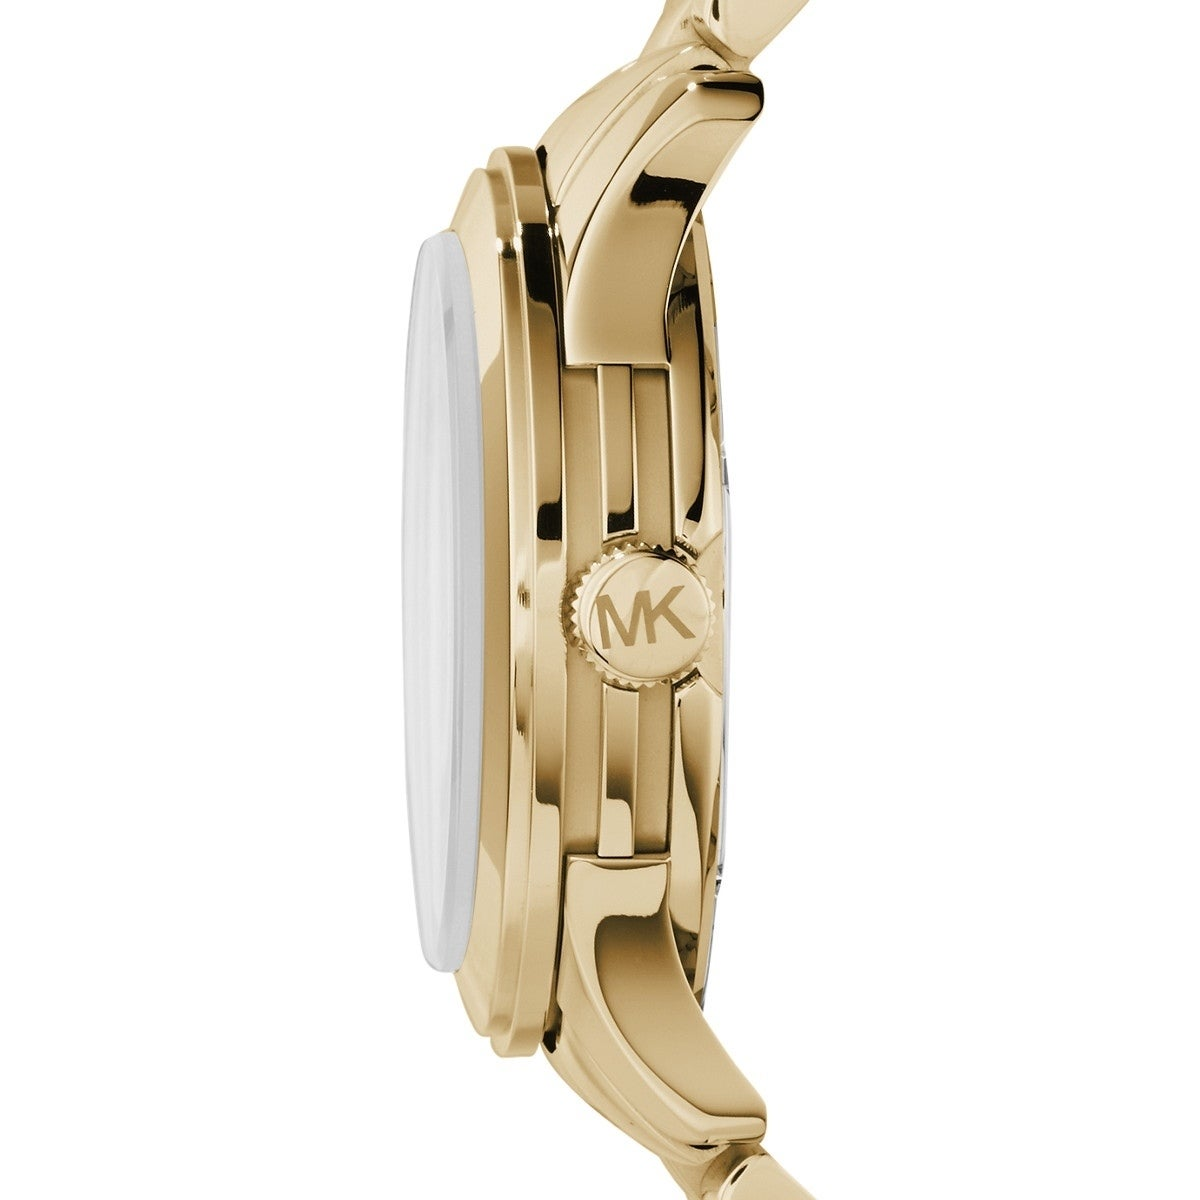 adb4fa1f6875 Shop Michael Kors Women s MK5706 Goldtone Stainless Steel Quartz Watch with  Goldtone Dial - Gold - Free Shipping Today - Overstock - 9183502